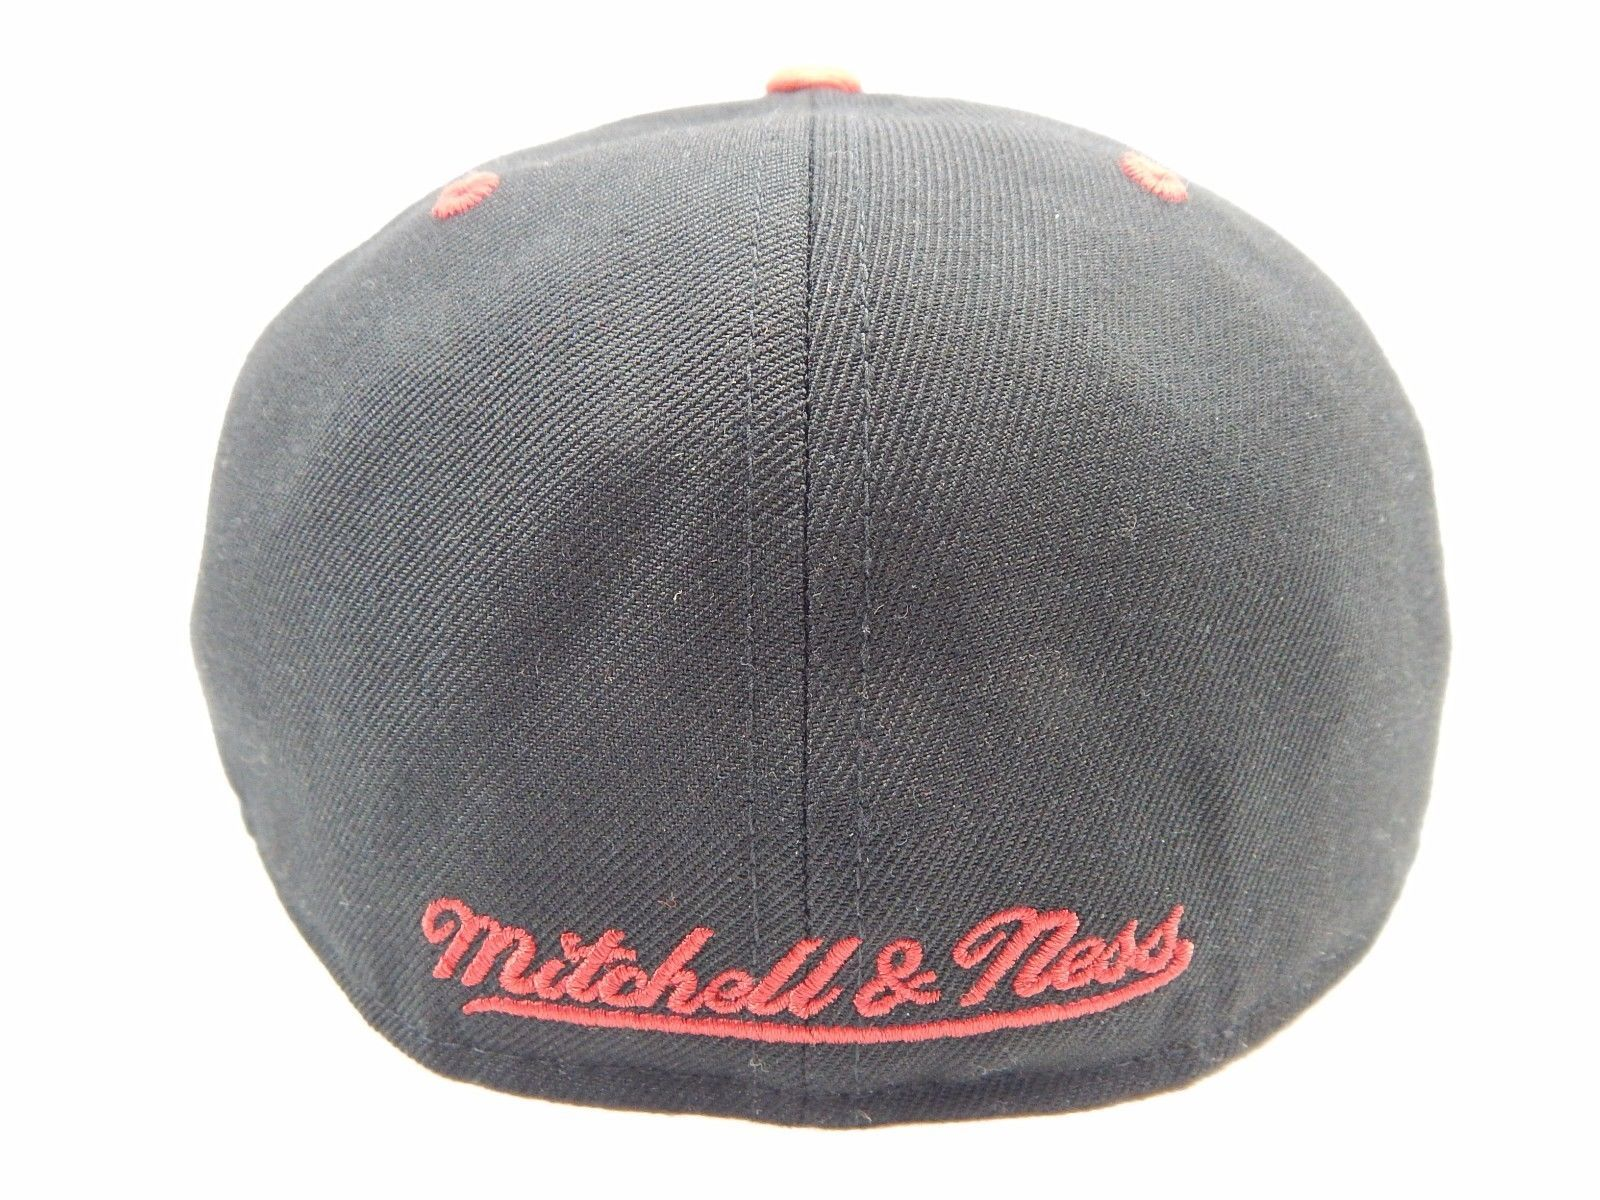 Miami Heat Mitchell & Ness Size 7 1/2 Crown Fitted NBA Cap Hat Black Red Gray